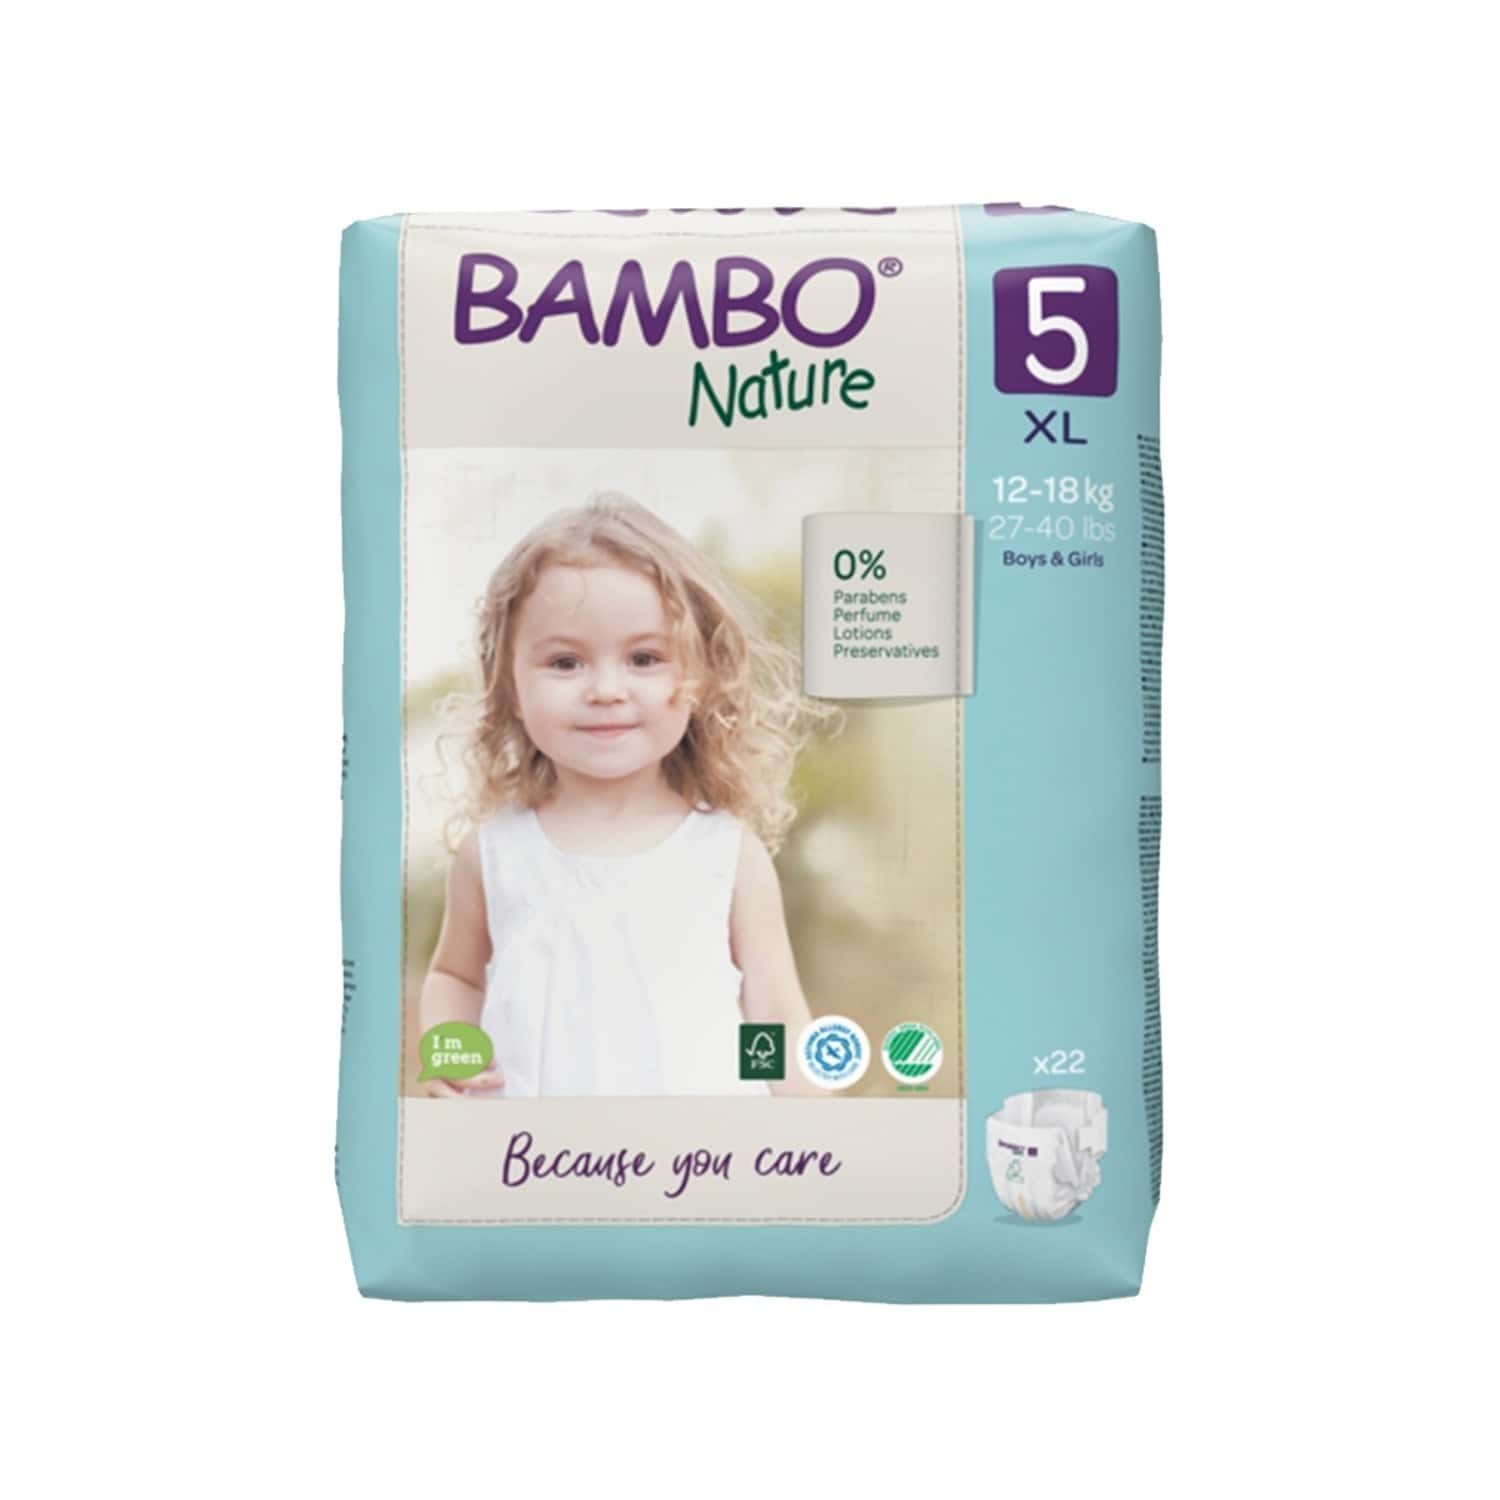 Bambo Nature Xl Size Diaper With Wetness Indicator - 22 Diapers